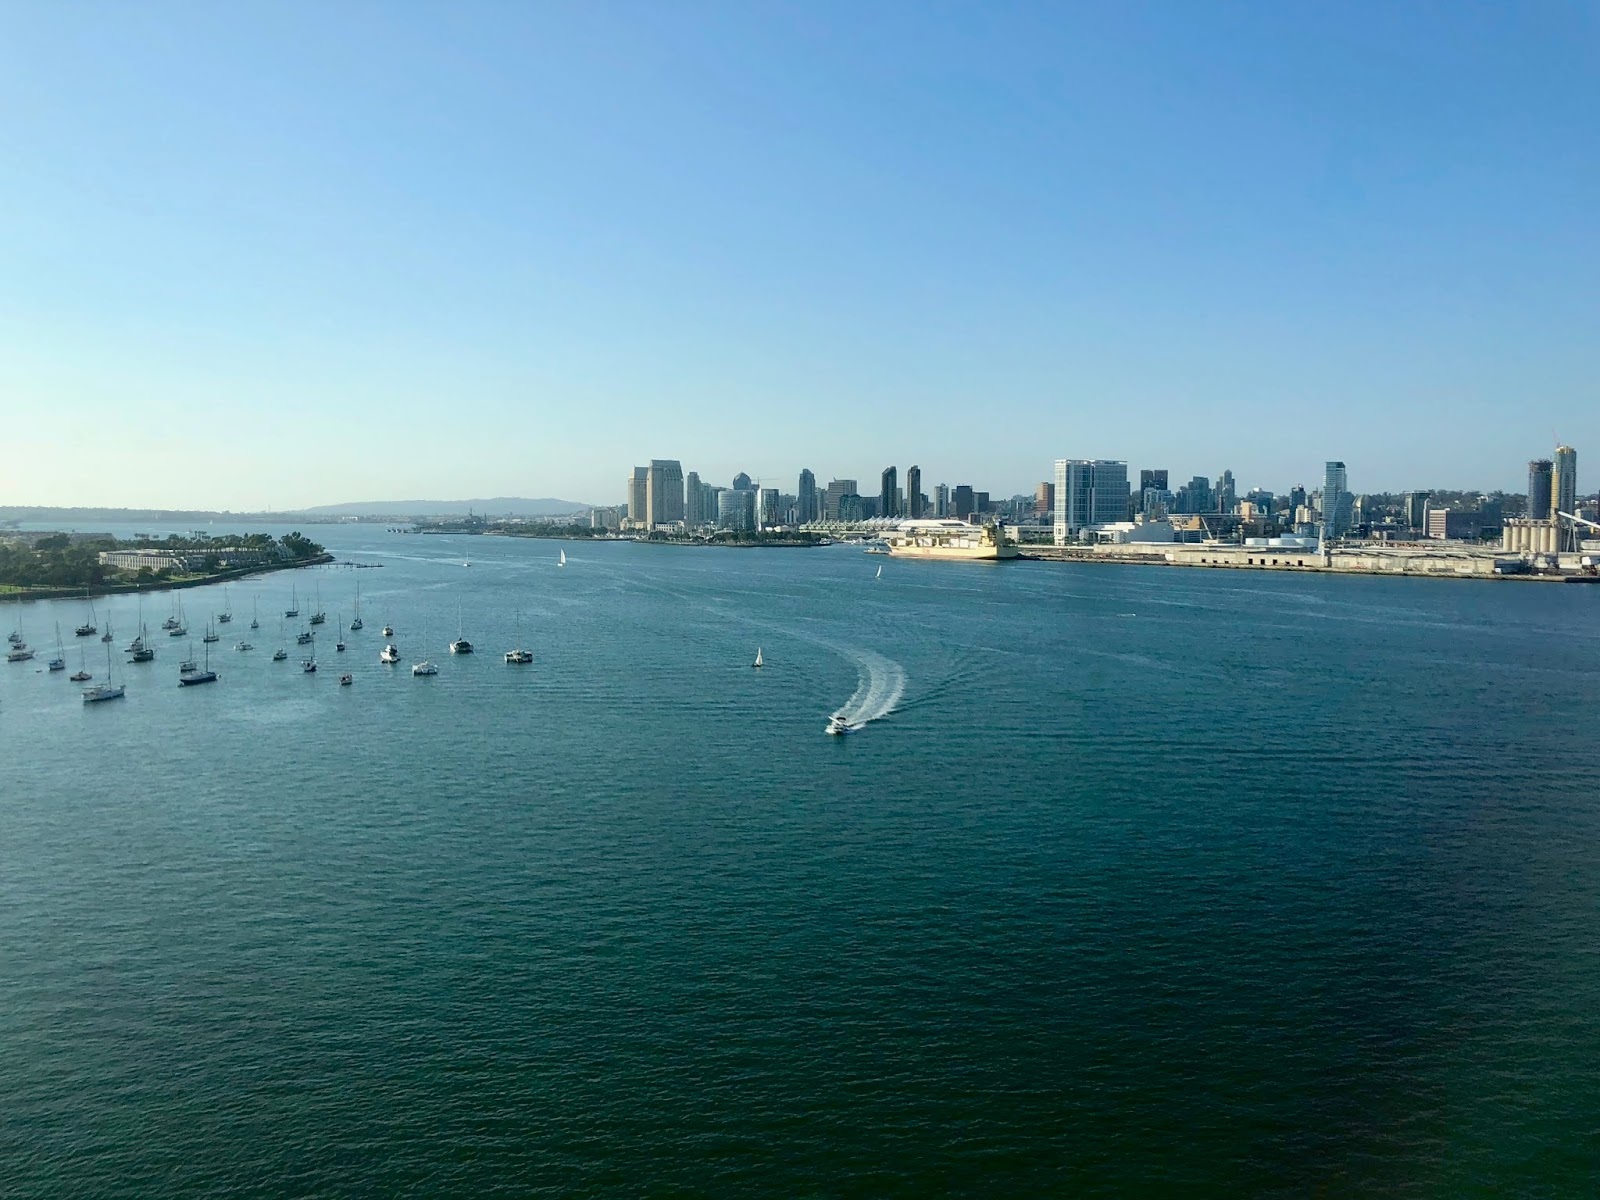 Coronado Island, San Diego, California, August 2018